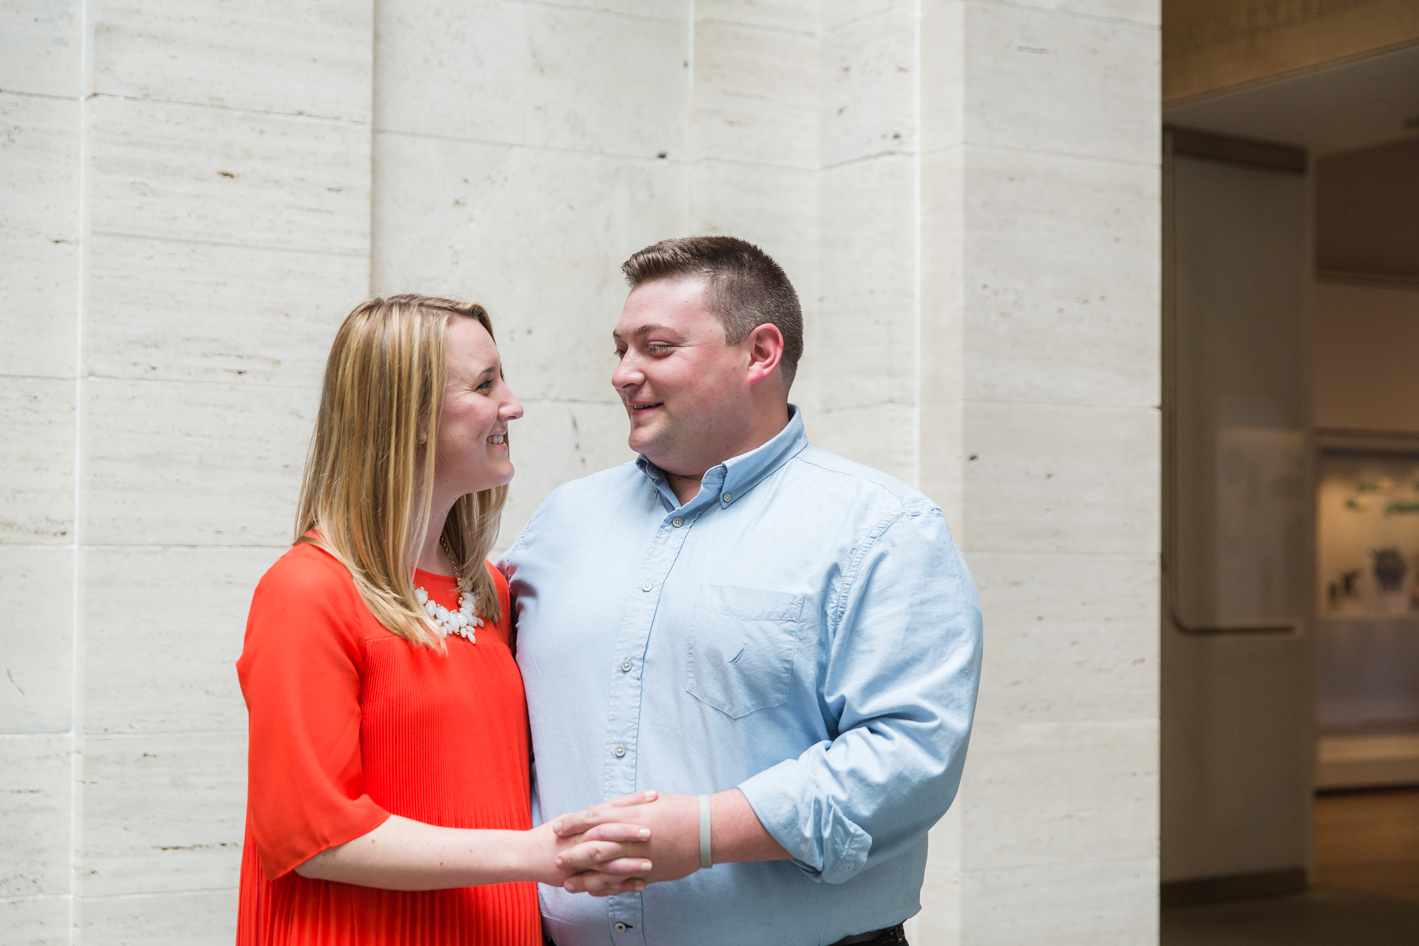 harvard-art-museum-engagement-photography-session-1